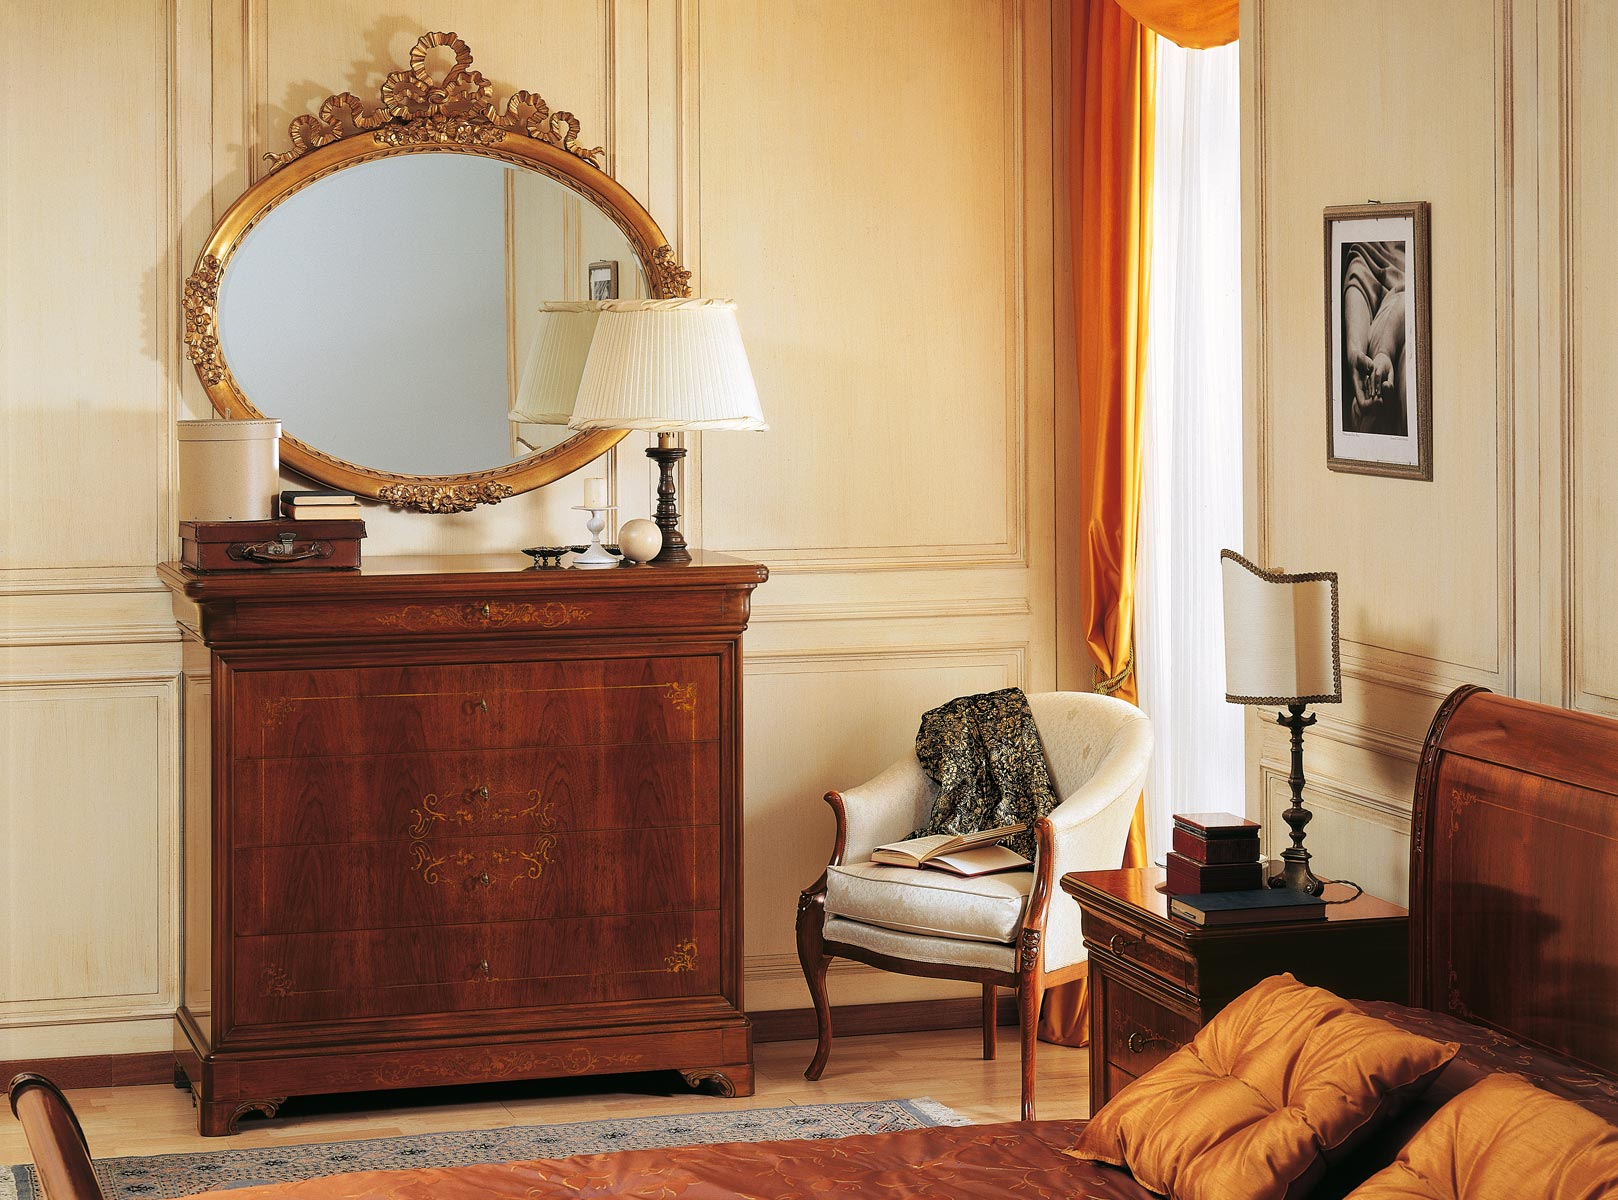 19th Century French Bedroom Inlaid Chest Of Drawers And Golden Mirror Vimercati Classic Furniture